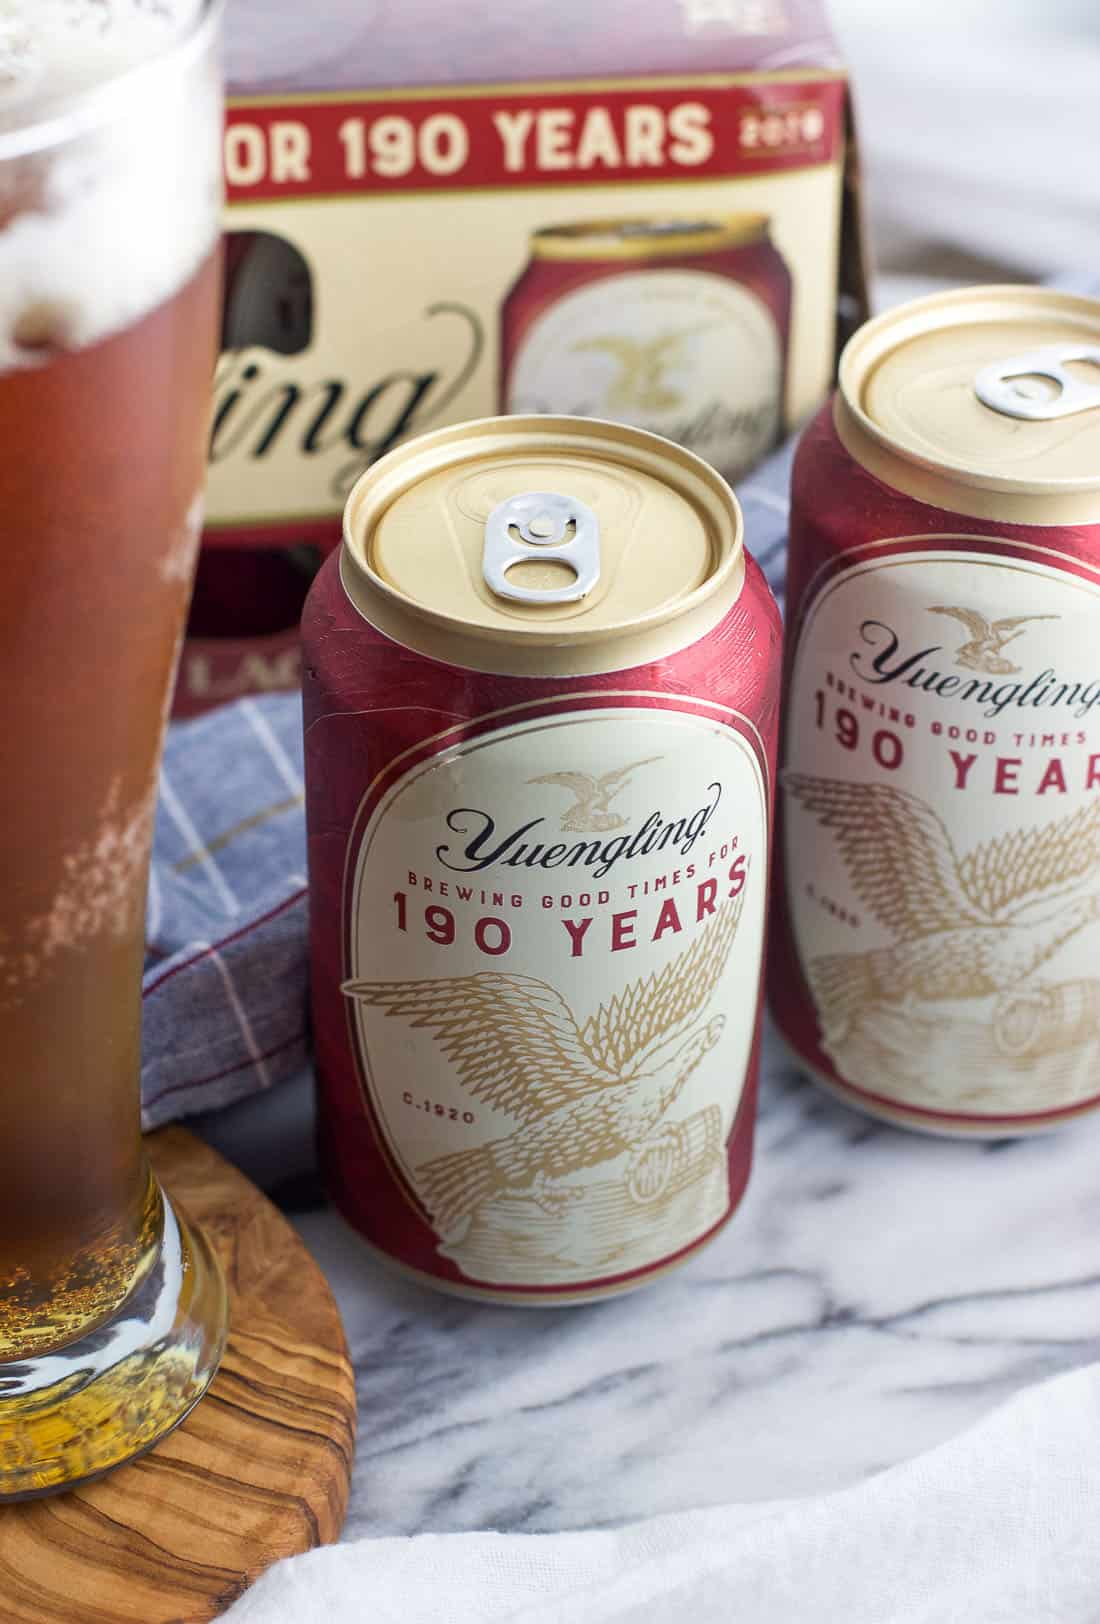 A close-up of Yuengling cans on a marble board